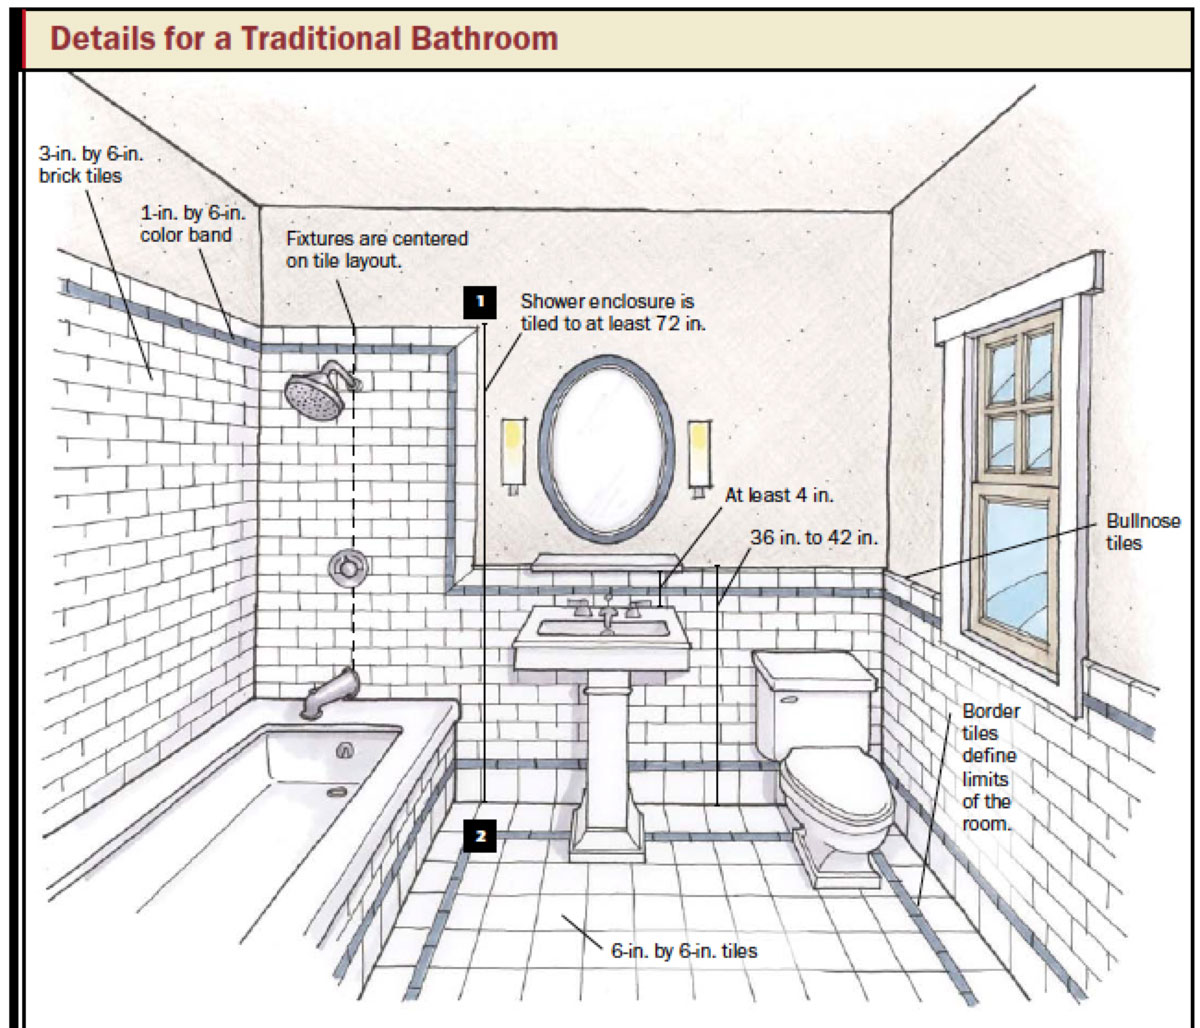 Bathroom Tile Layout Planner : Bathroom design planning tips taymor